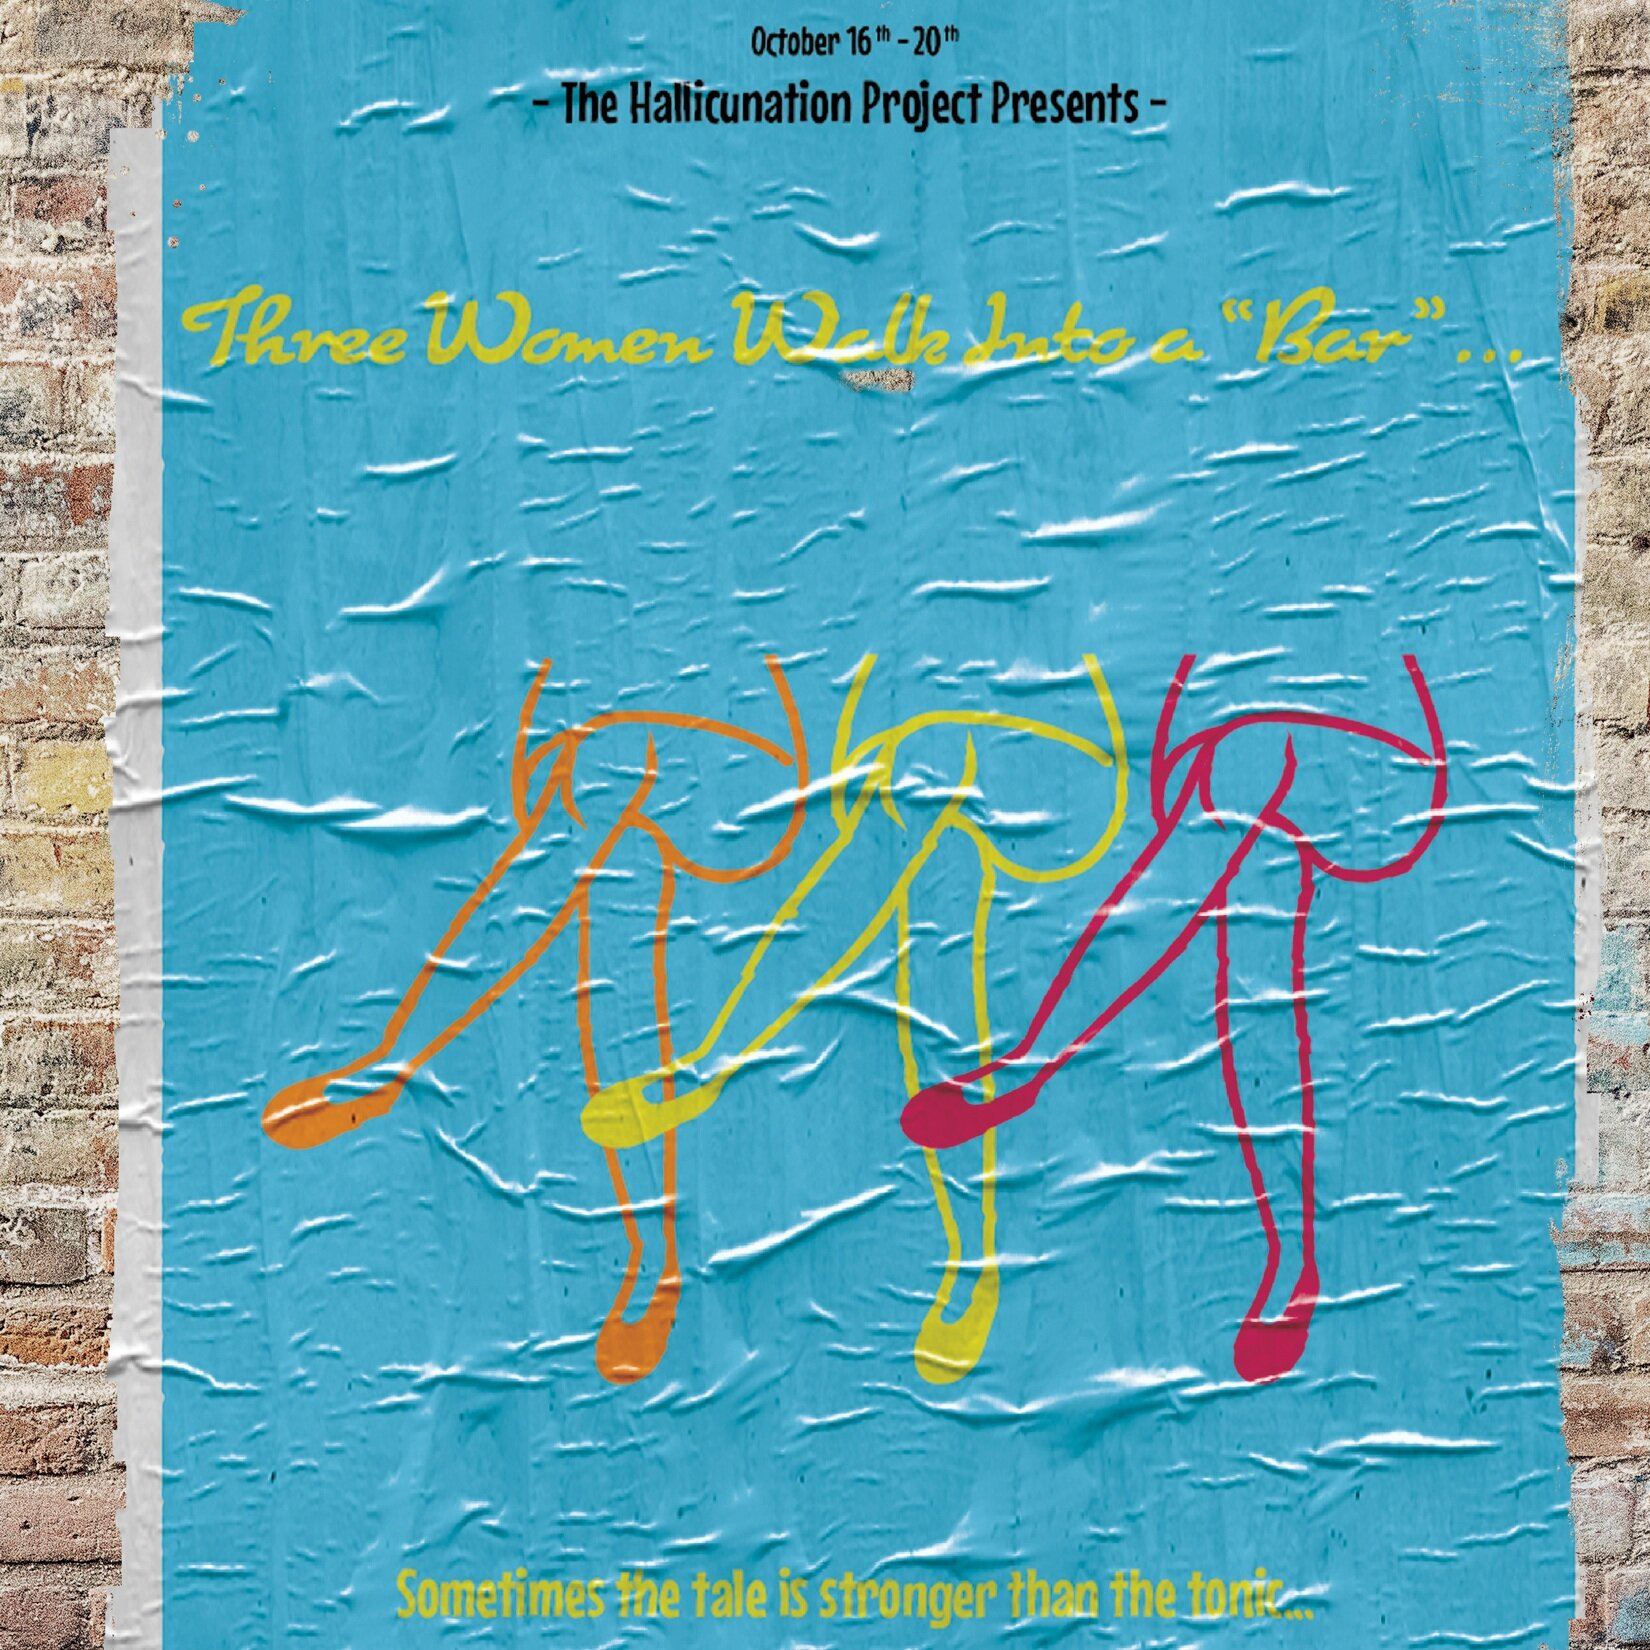 The Hallucination Project -  3 Women Walk Into A Bar    Come have a drink! Sometimes the tale is stronger than the tonic...   When?   Wednesday, 10/16 - 8:15 PM  Thursday, 10/17 - 6:30 PM  Friday, 10/18 - 10:00 PM  Saturday, 10/19 - 6:30 PM  Sunday, 10/20 - 4:45 PM    Where?  Downtown Cultural Arts Center Banquet Hall 401 N Howard St